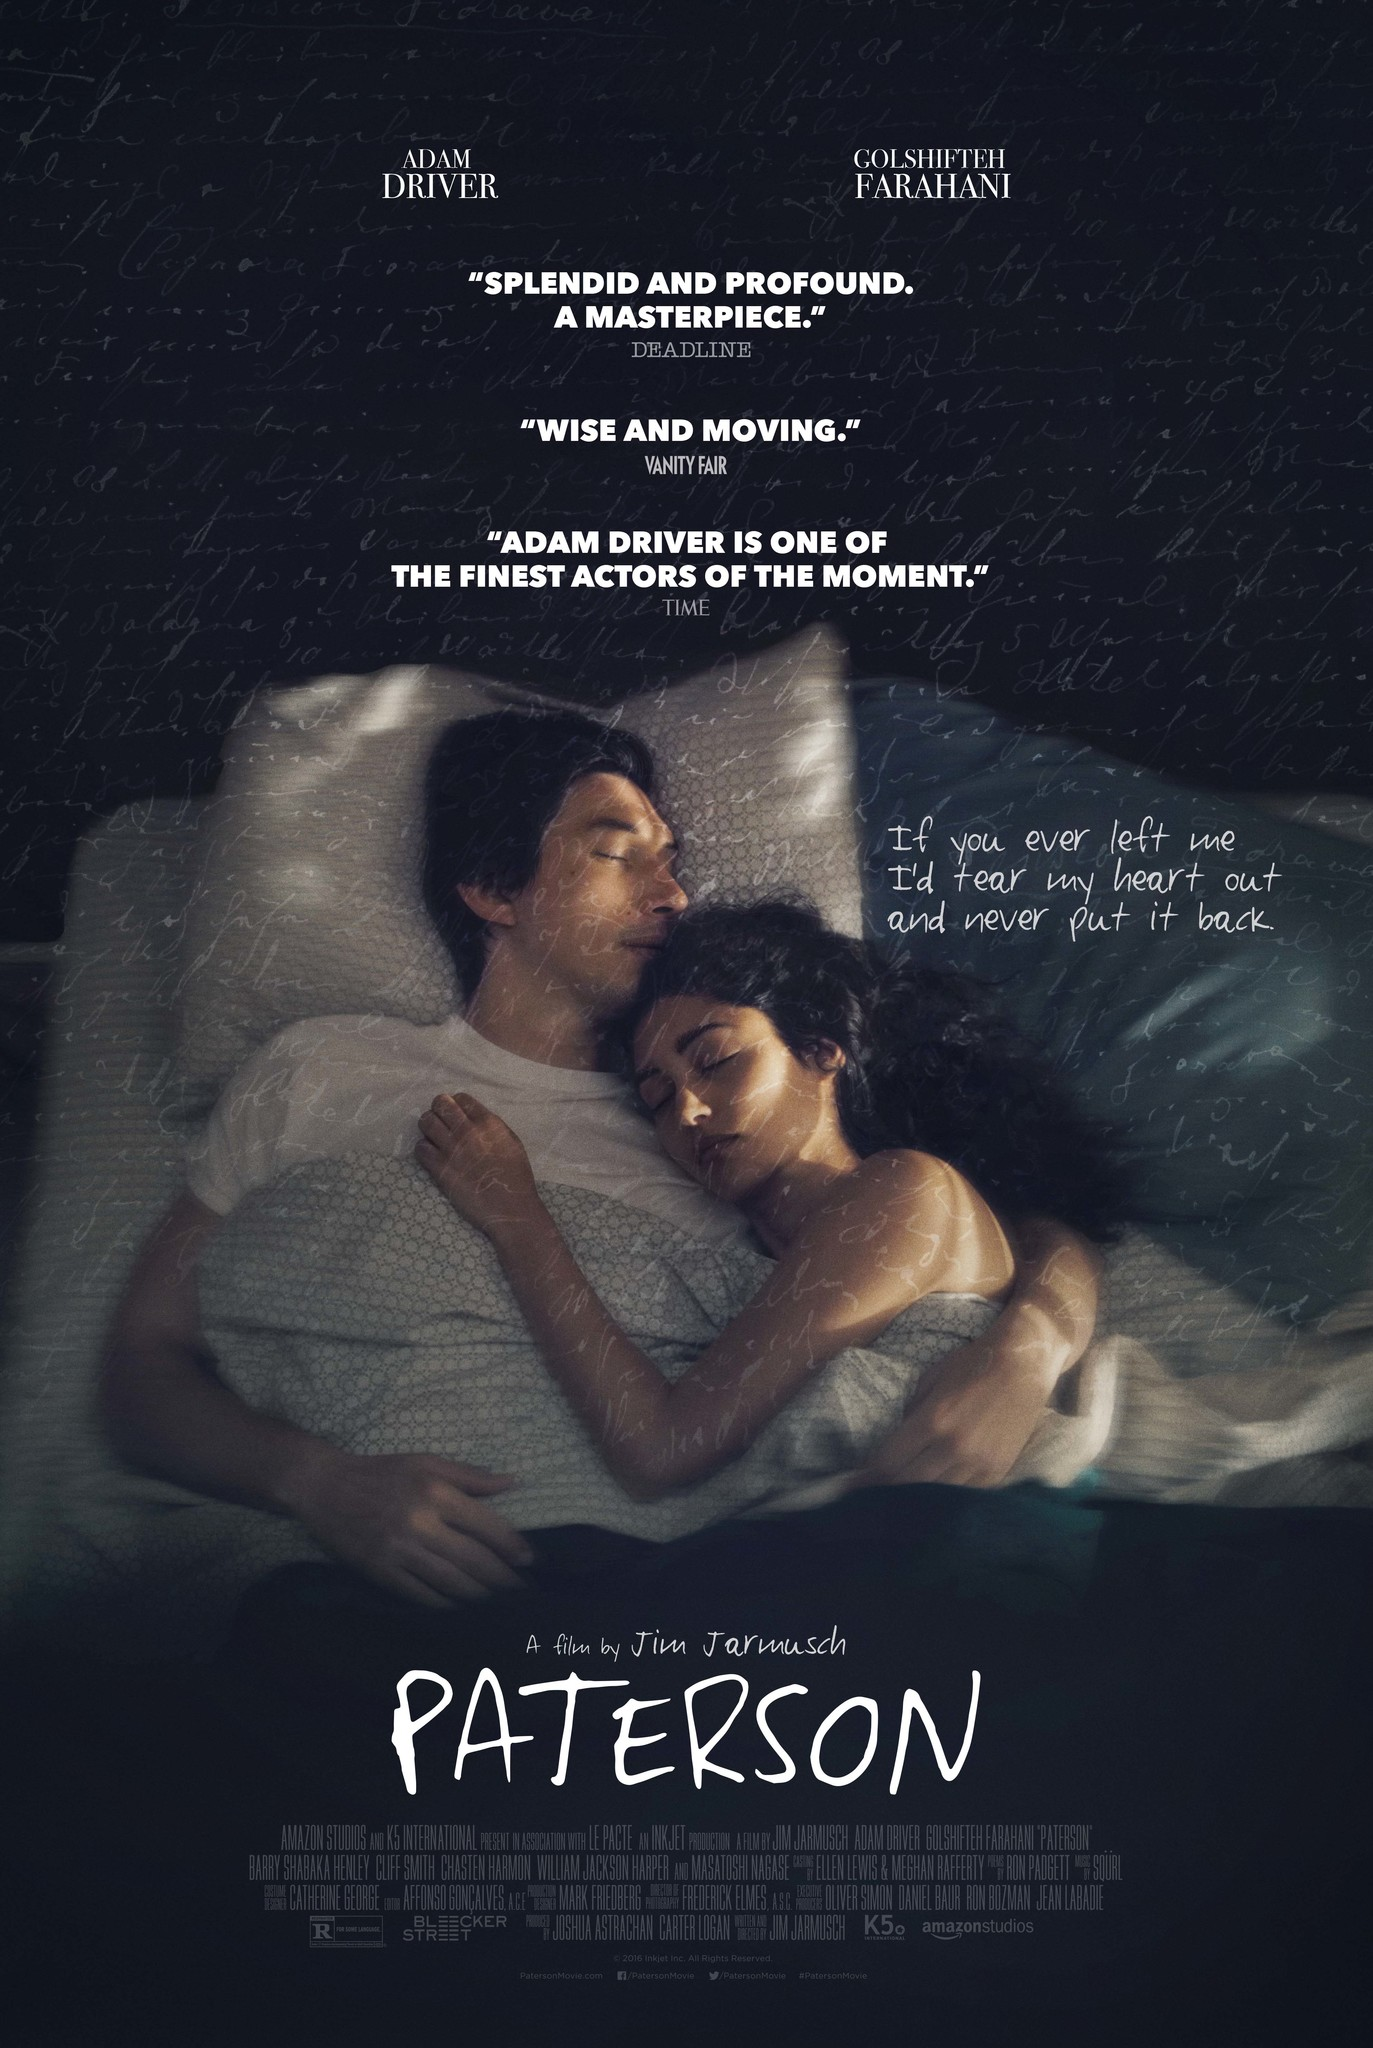 Woman curled up with a man with the title Paterson, by Jim Jarmusch